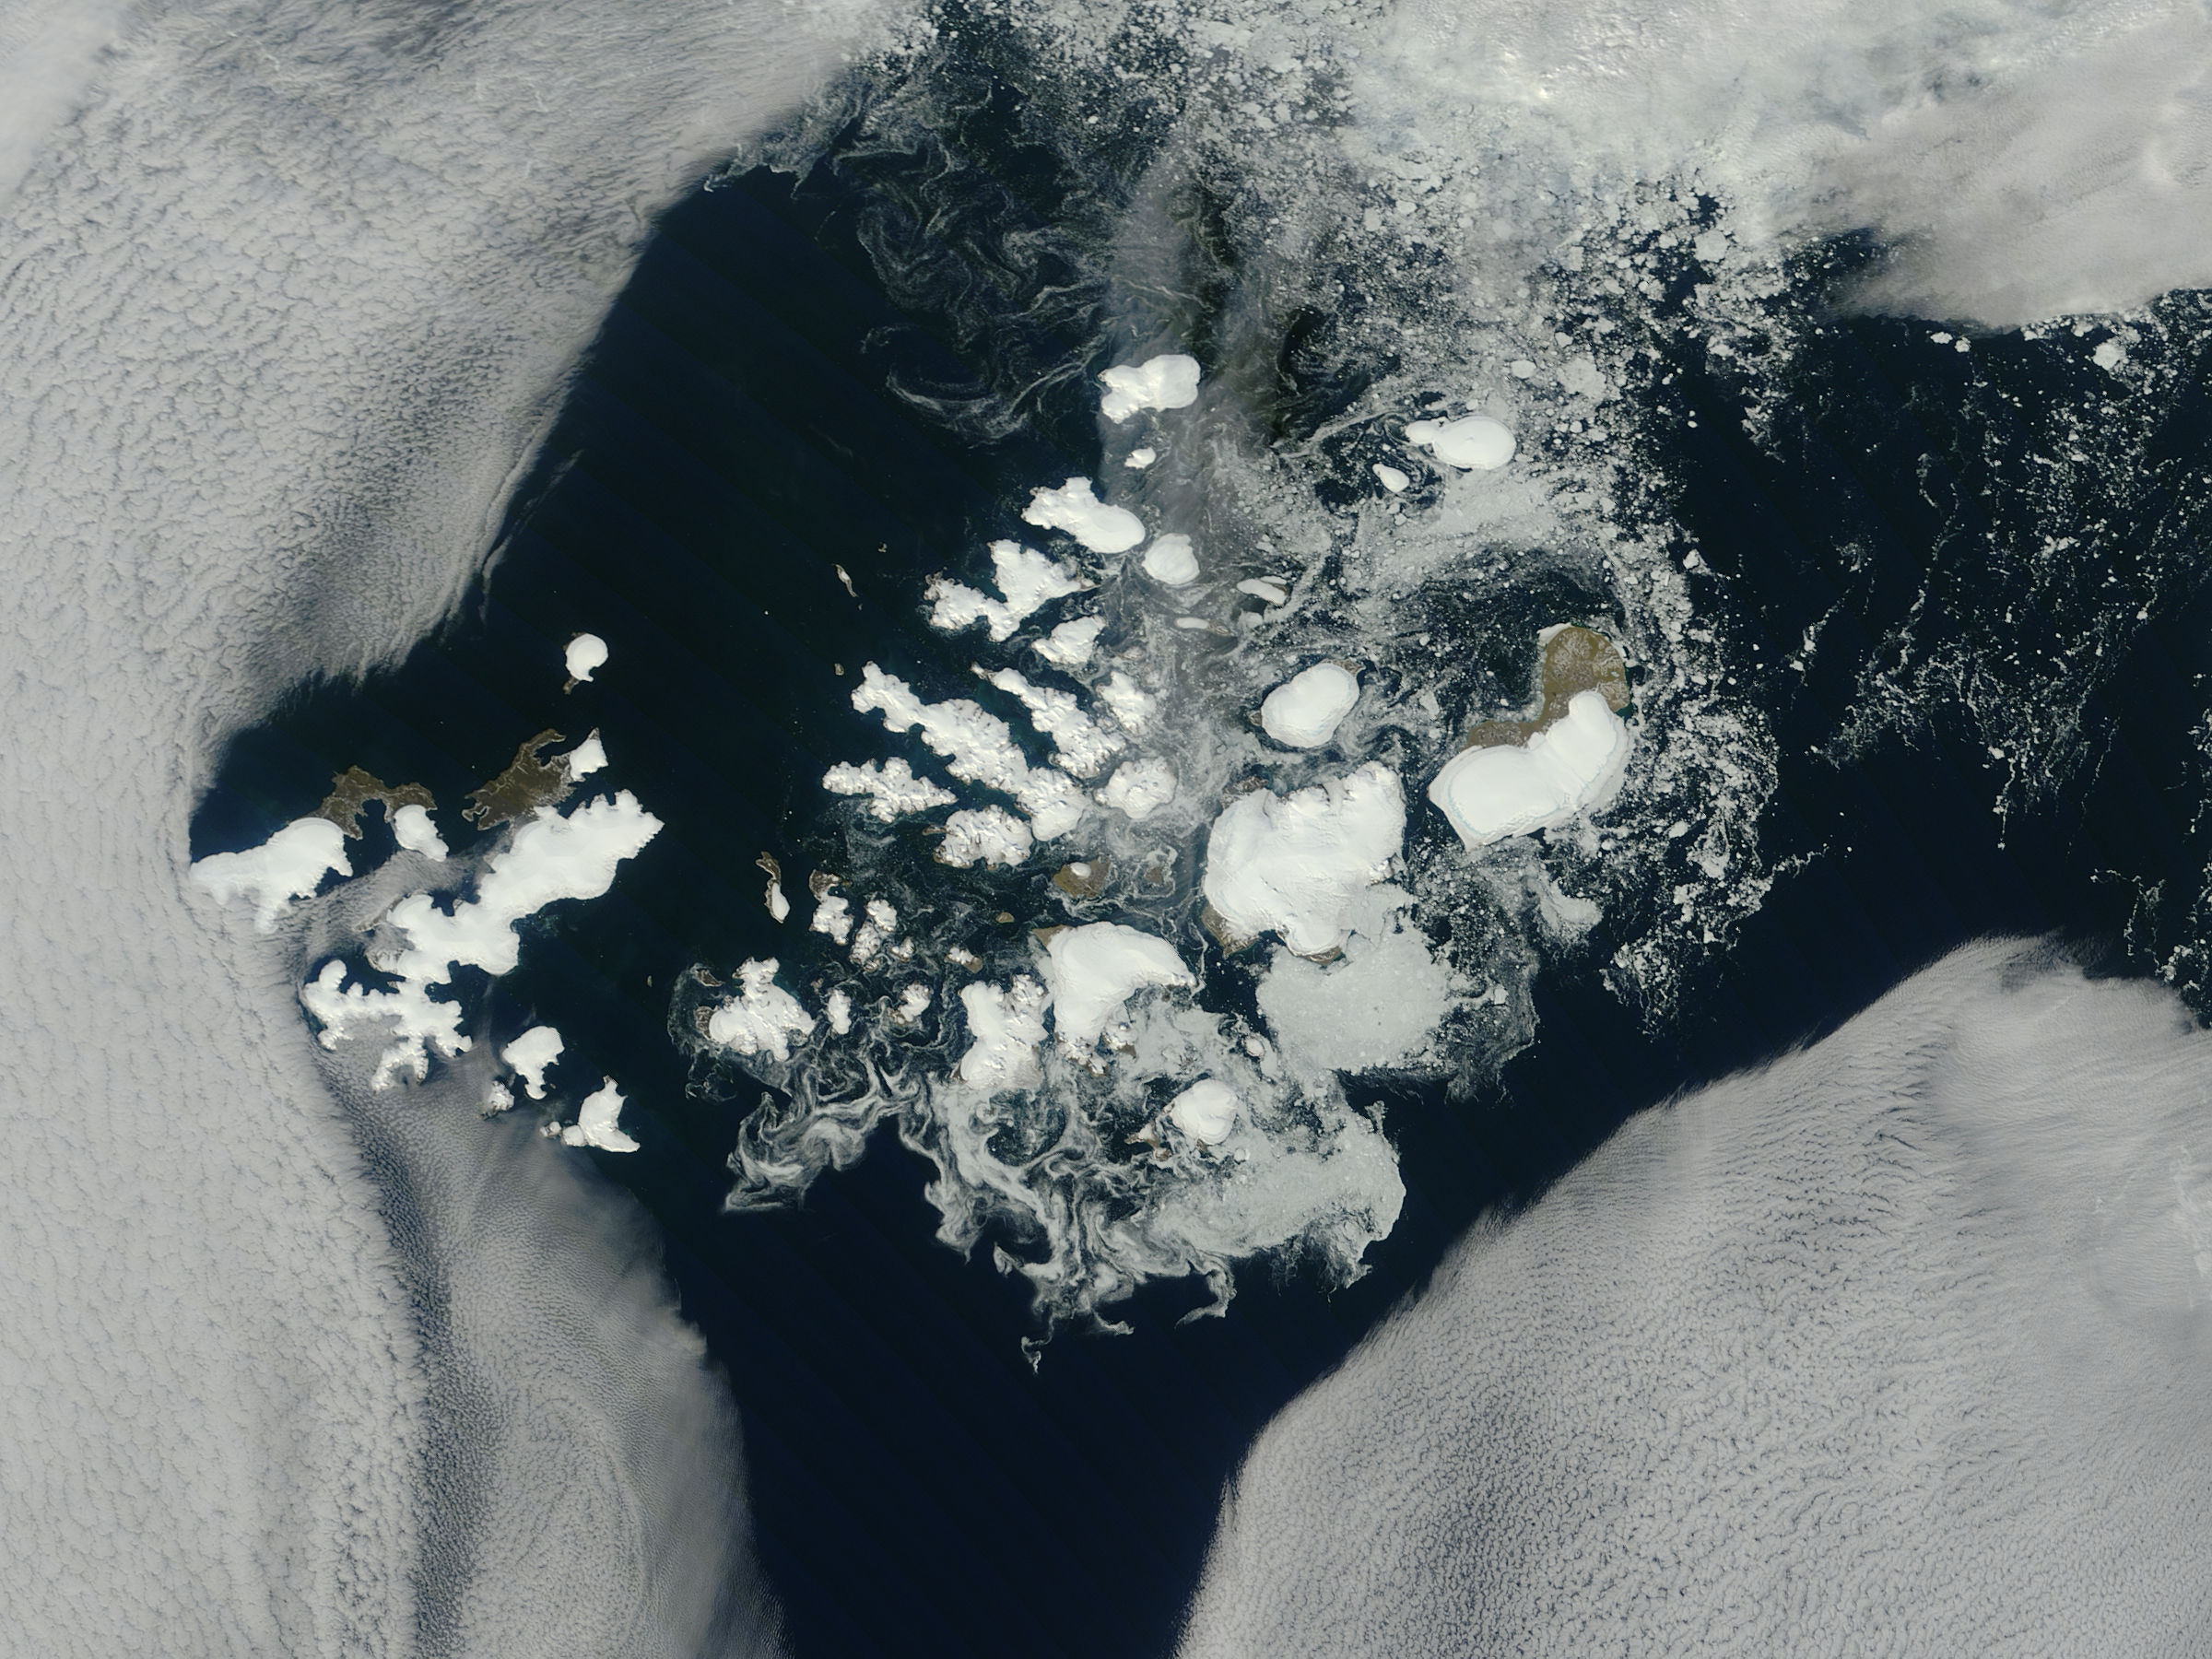 This satellite view of Franz Josef Land through the clouds was captured by the Moderate Resolution Imaging Spectroradiometer on NASA's Terra satellite on August 17, 2011. Photo credit: Jeff Schmaltz, MODIS Rapid Response, NASA Goddard Space Flight Center